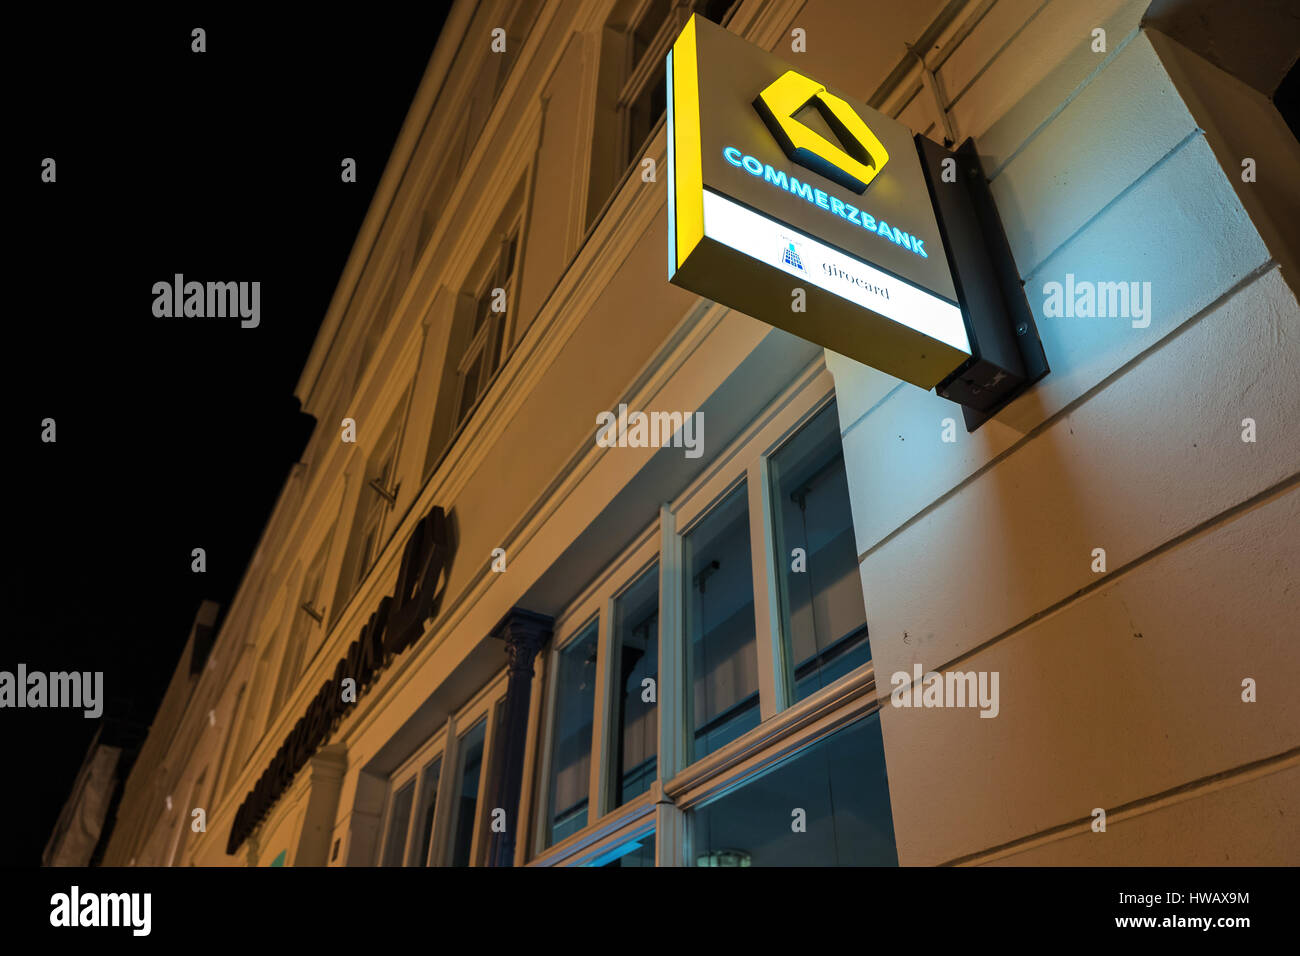 Commerzbank branch at night - Stock Image